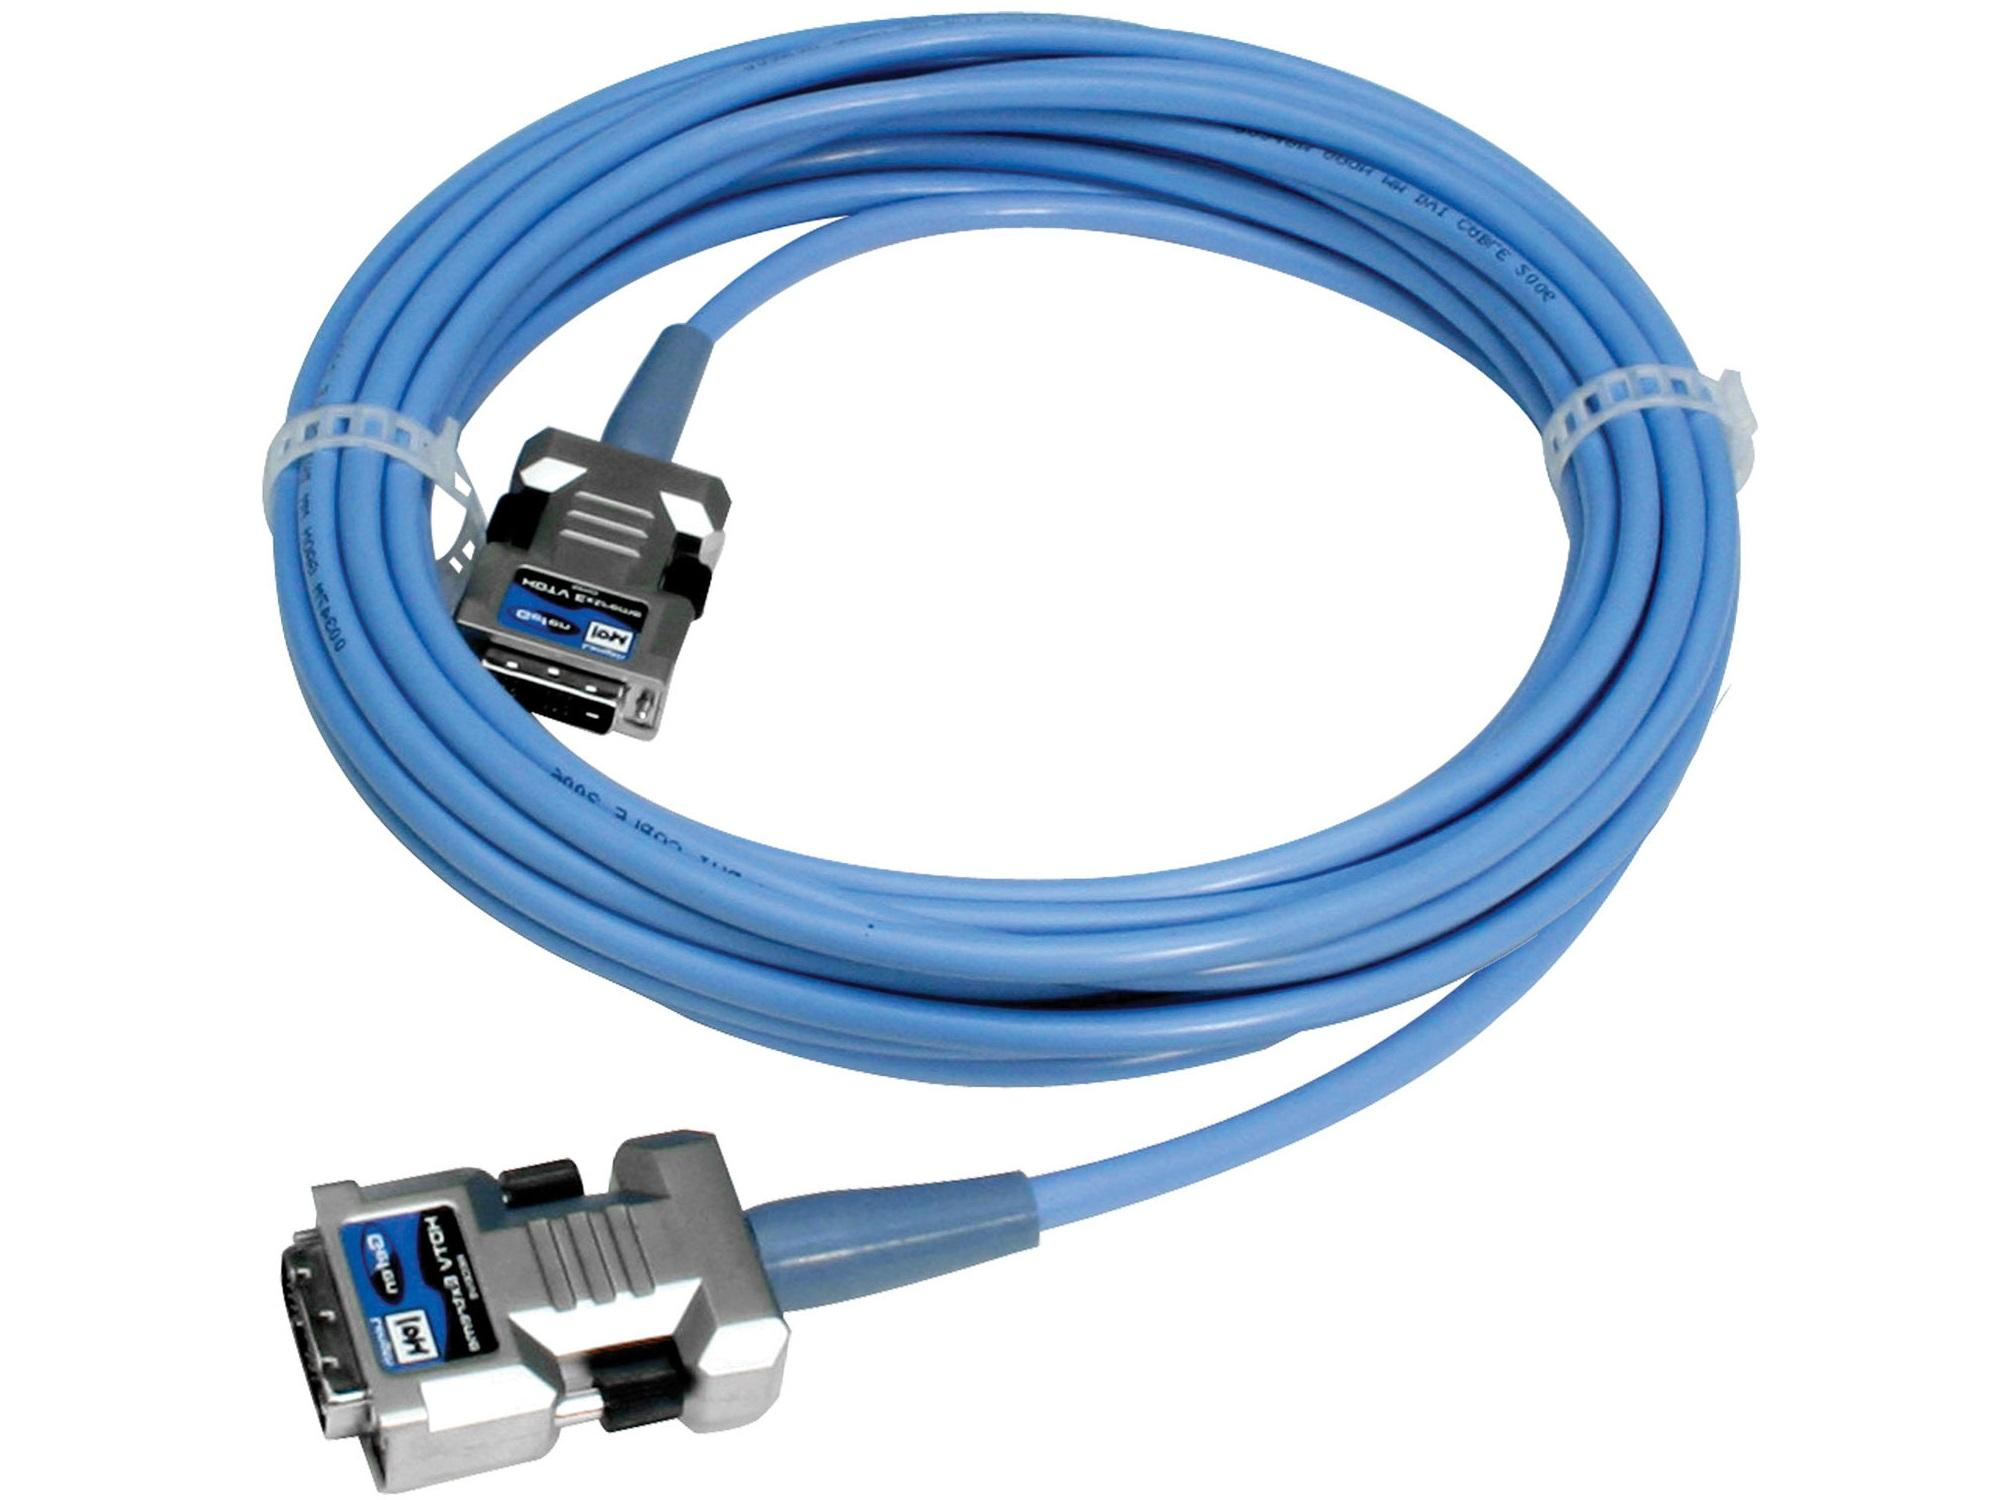 CAB-HDTV-150MM HDTV DVI-D Fiber Optic Cable 150 ft (M-M) by Gefen